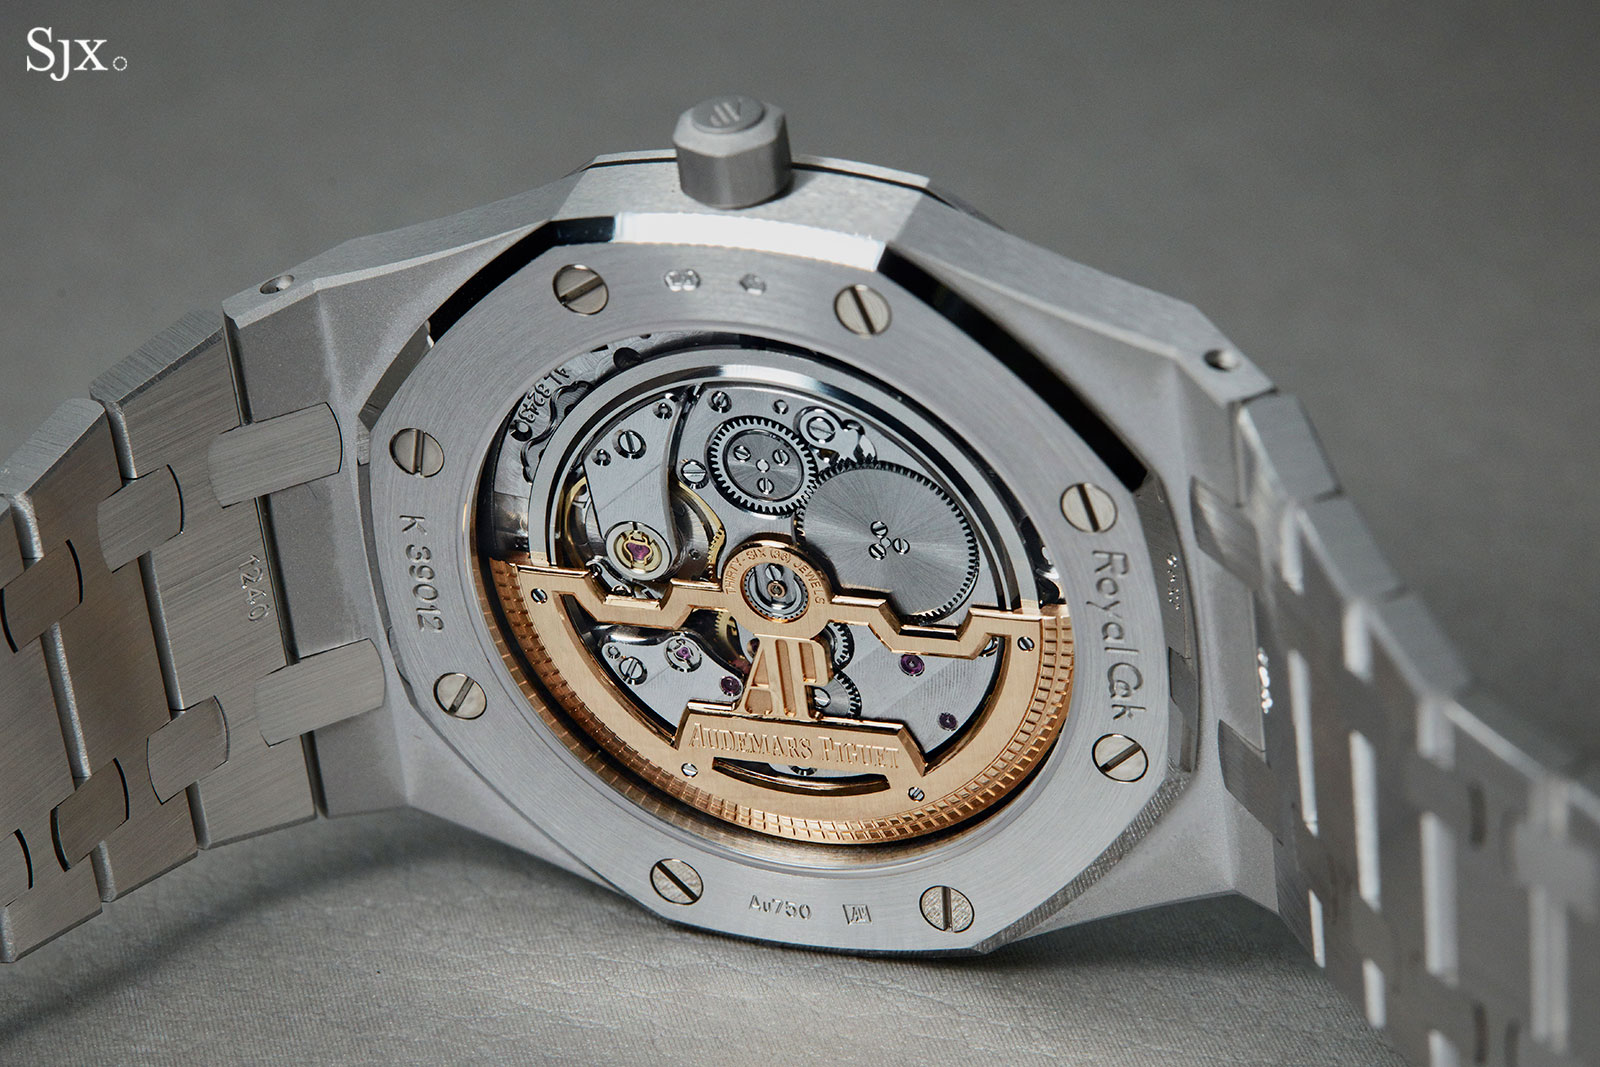 Audemars Piguet Royal Oak Salmon white gold 15202BC 05